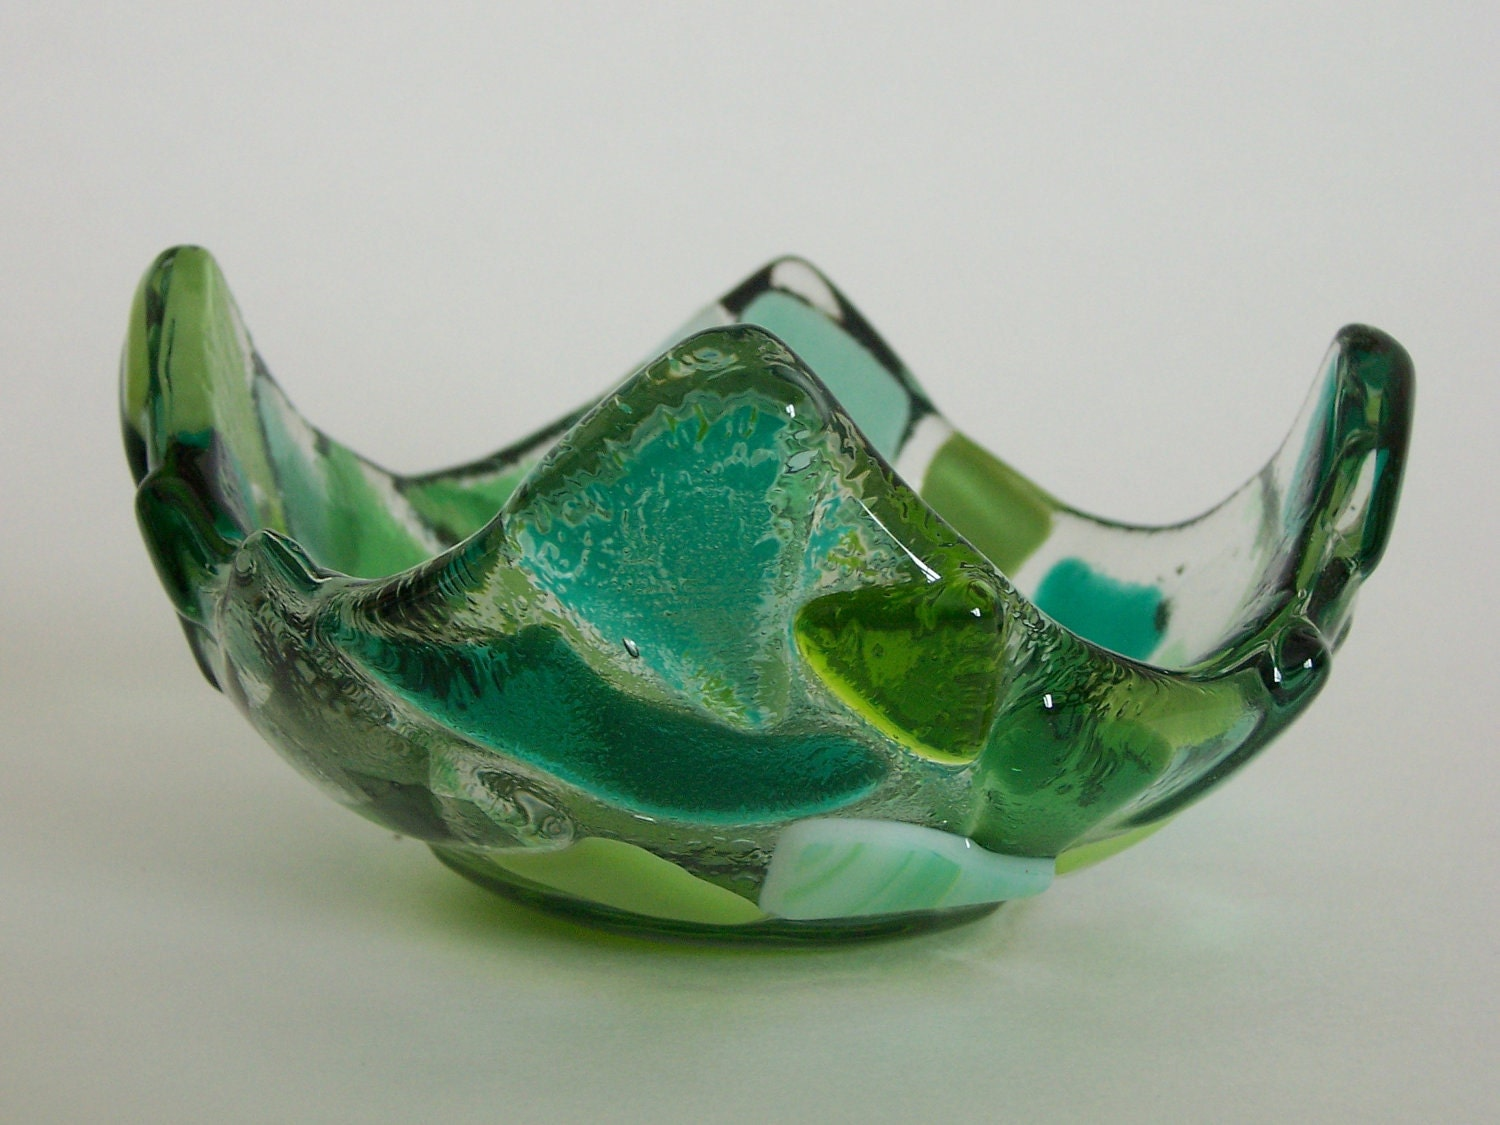 Fused Glass- Votive- Bowl- Green Lily Pad - Candleholder- Dip Dish-  Mosaic- Teal, Aqua, Lime - JacksonGlassMill